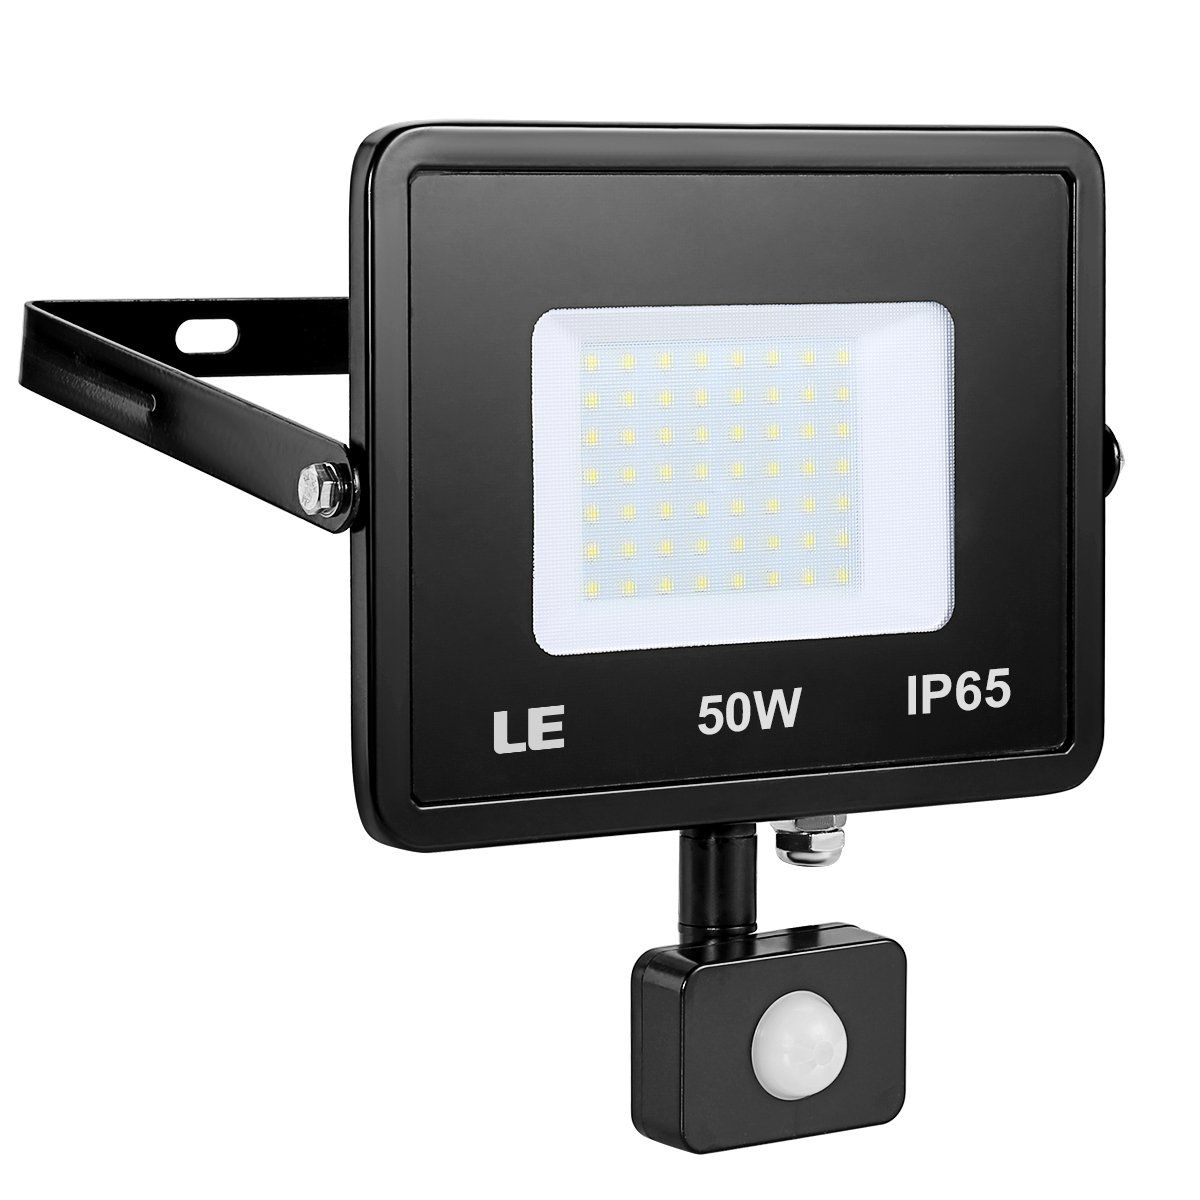 Outdoor Led Motion Lights Amusing Le 50W Motion Sensor Flood Light 4000Lm Outdoor Led Flood Lights Design Ideas